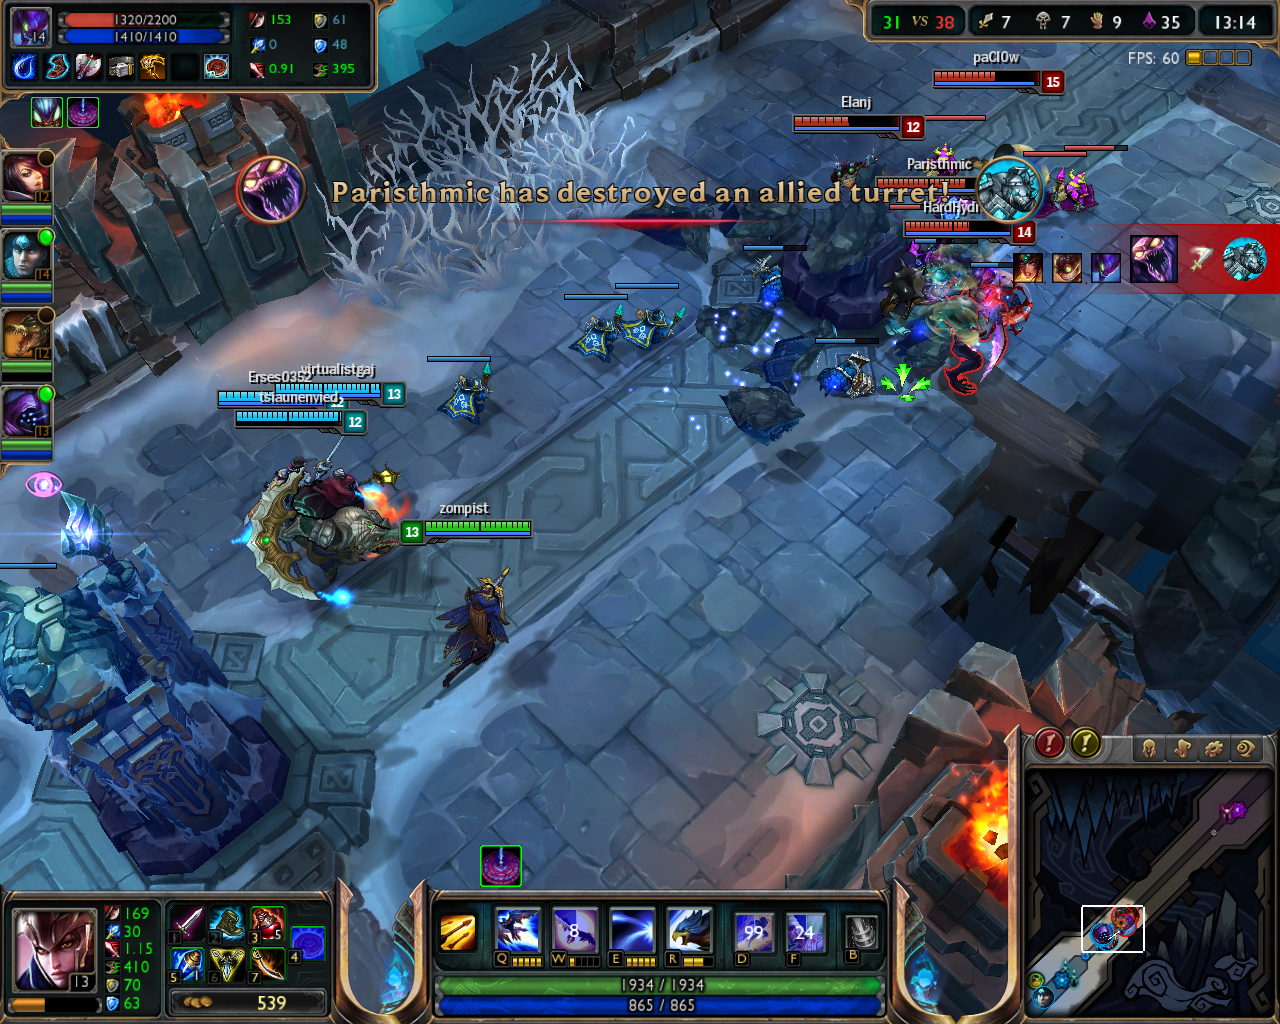 Let S Aram It Up Zompist S E Z Rant Page Hunt and eliminate prey burst damage and target access. let s aram it up zompist s e z rant page